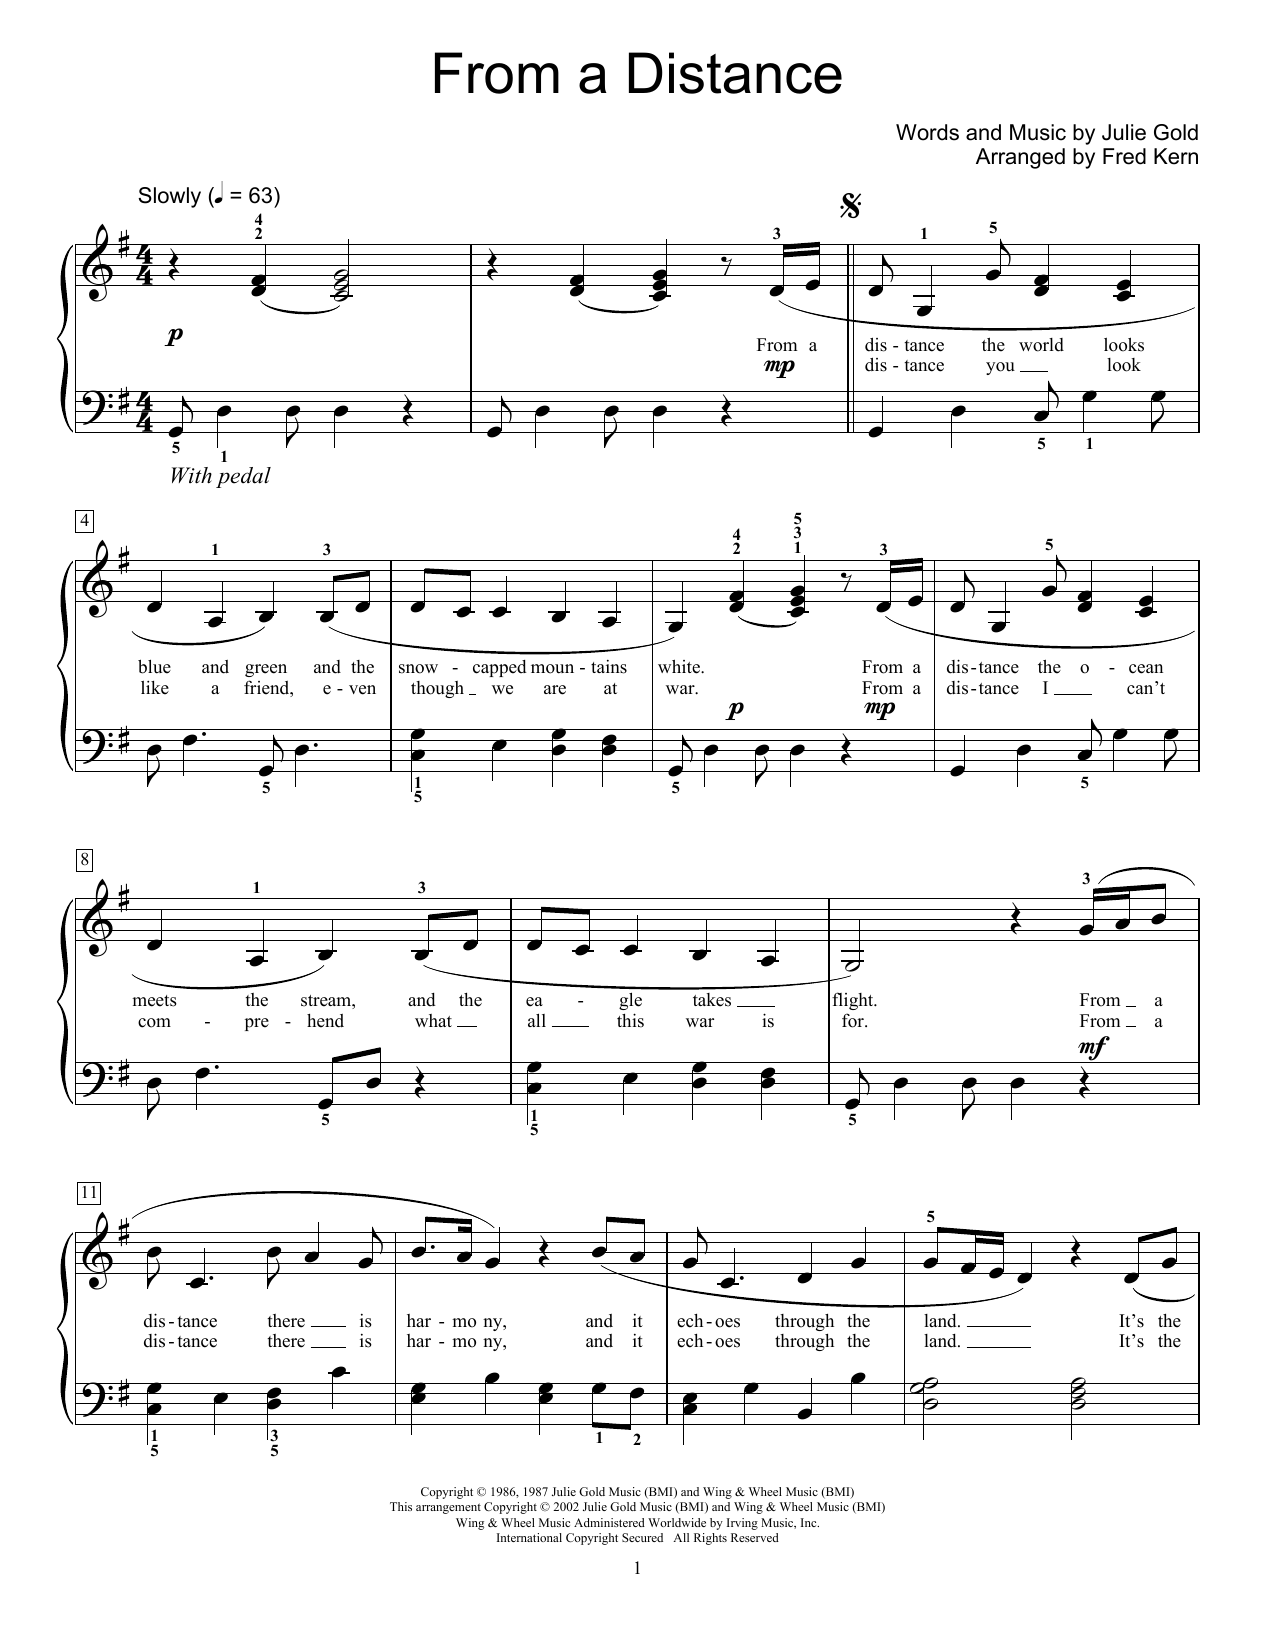 Bette Midler From A Distance (arr. Fred Kern) sheet music notes and chords. Download Printable PDF.